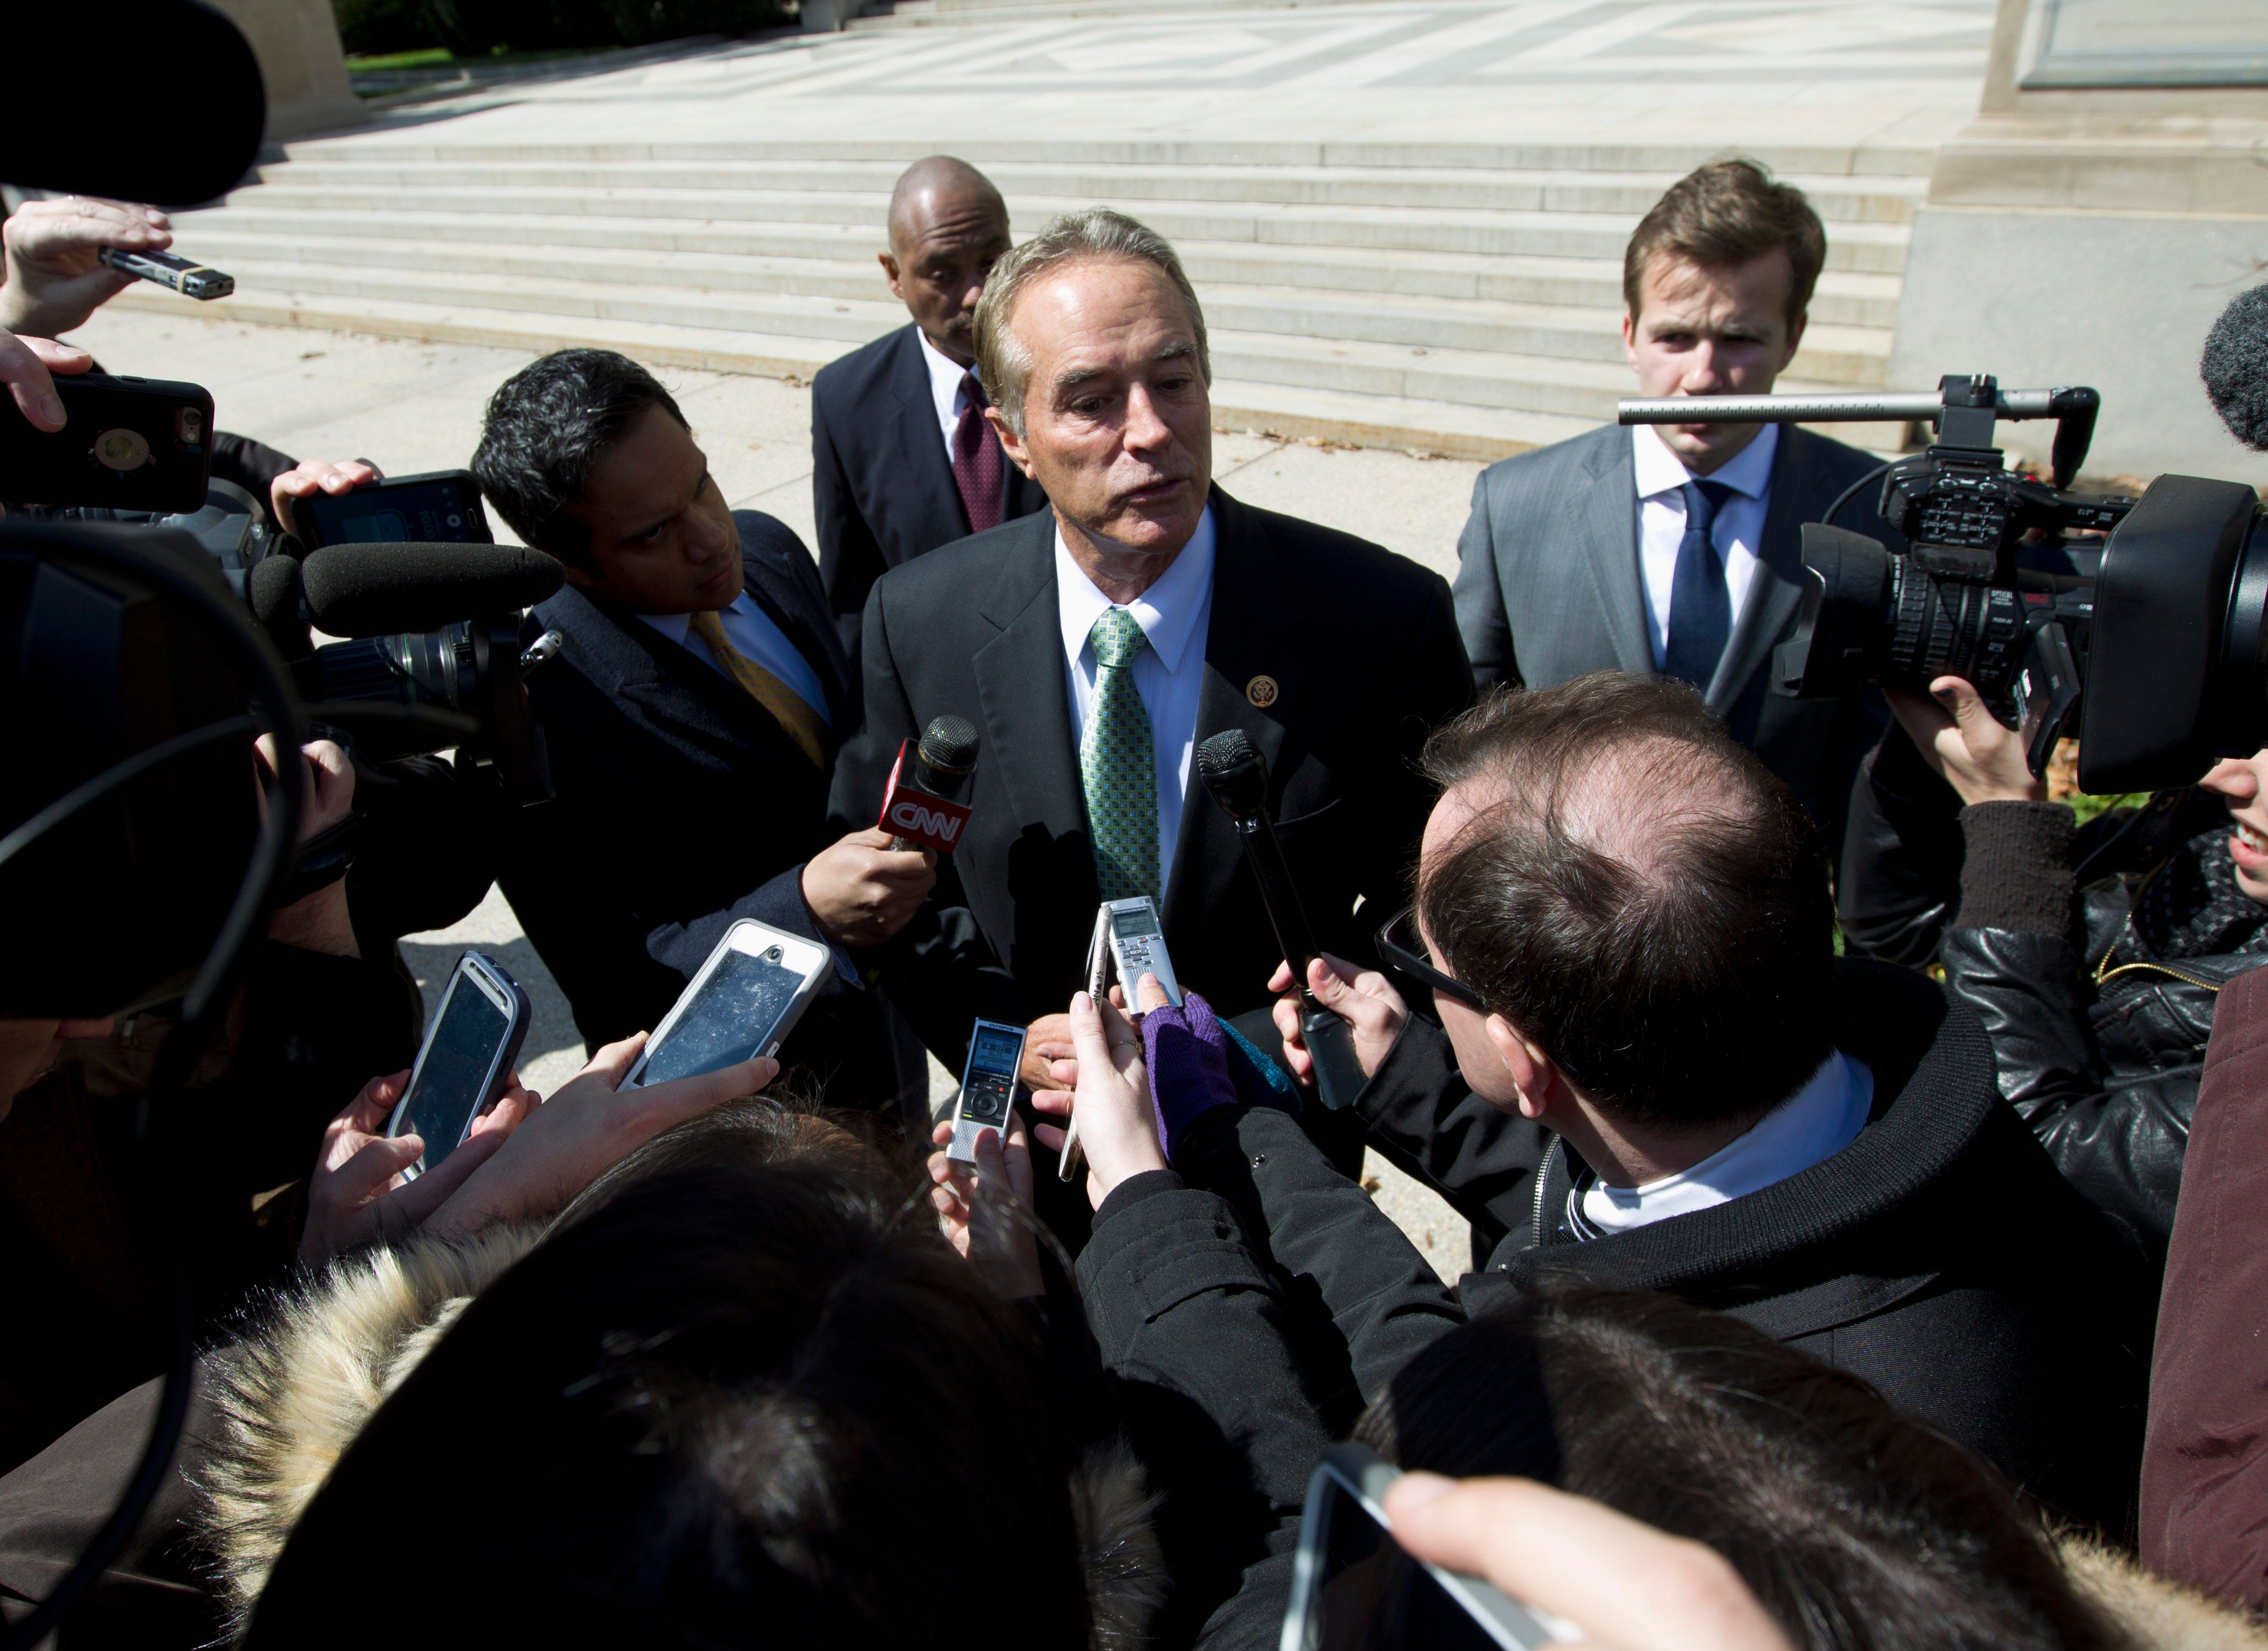 FILE - In this March 21, 2016, file photo, Rep. Chris Collins, R-N.Y., speaks with reporters as he leaves a closed-door meeting with Republican presidential candidate Donald Trump in Washington.  Winning re-election while indicted is a rare feat in U.S. history. But two congressmen are attempting to do just that in this midterm election: Rep. Duncan Hunter of California and Rep. Chris Collins of New York. The first Republican lawmakers to endorse President Donald Trump are now running low-profile campaigns, avoiding the media and meeting with voters at Republican friendly events.  ( AP Photo/Jose Luis Magana, File)